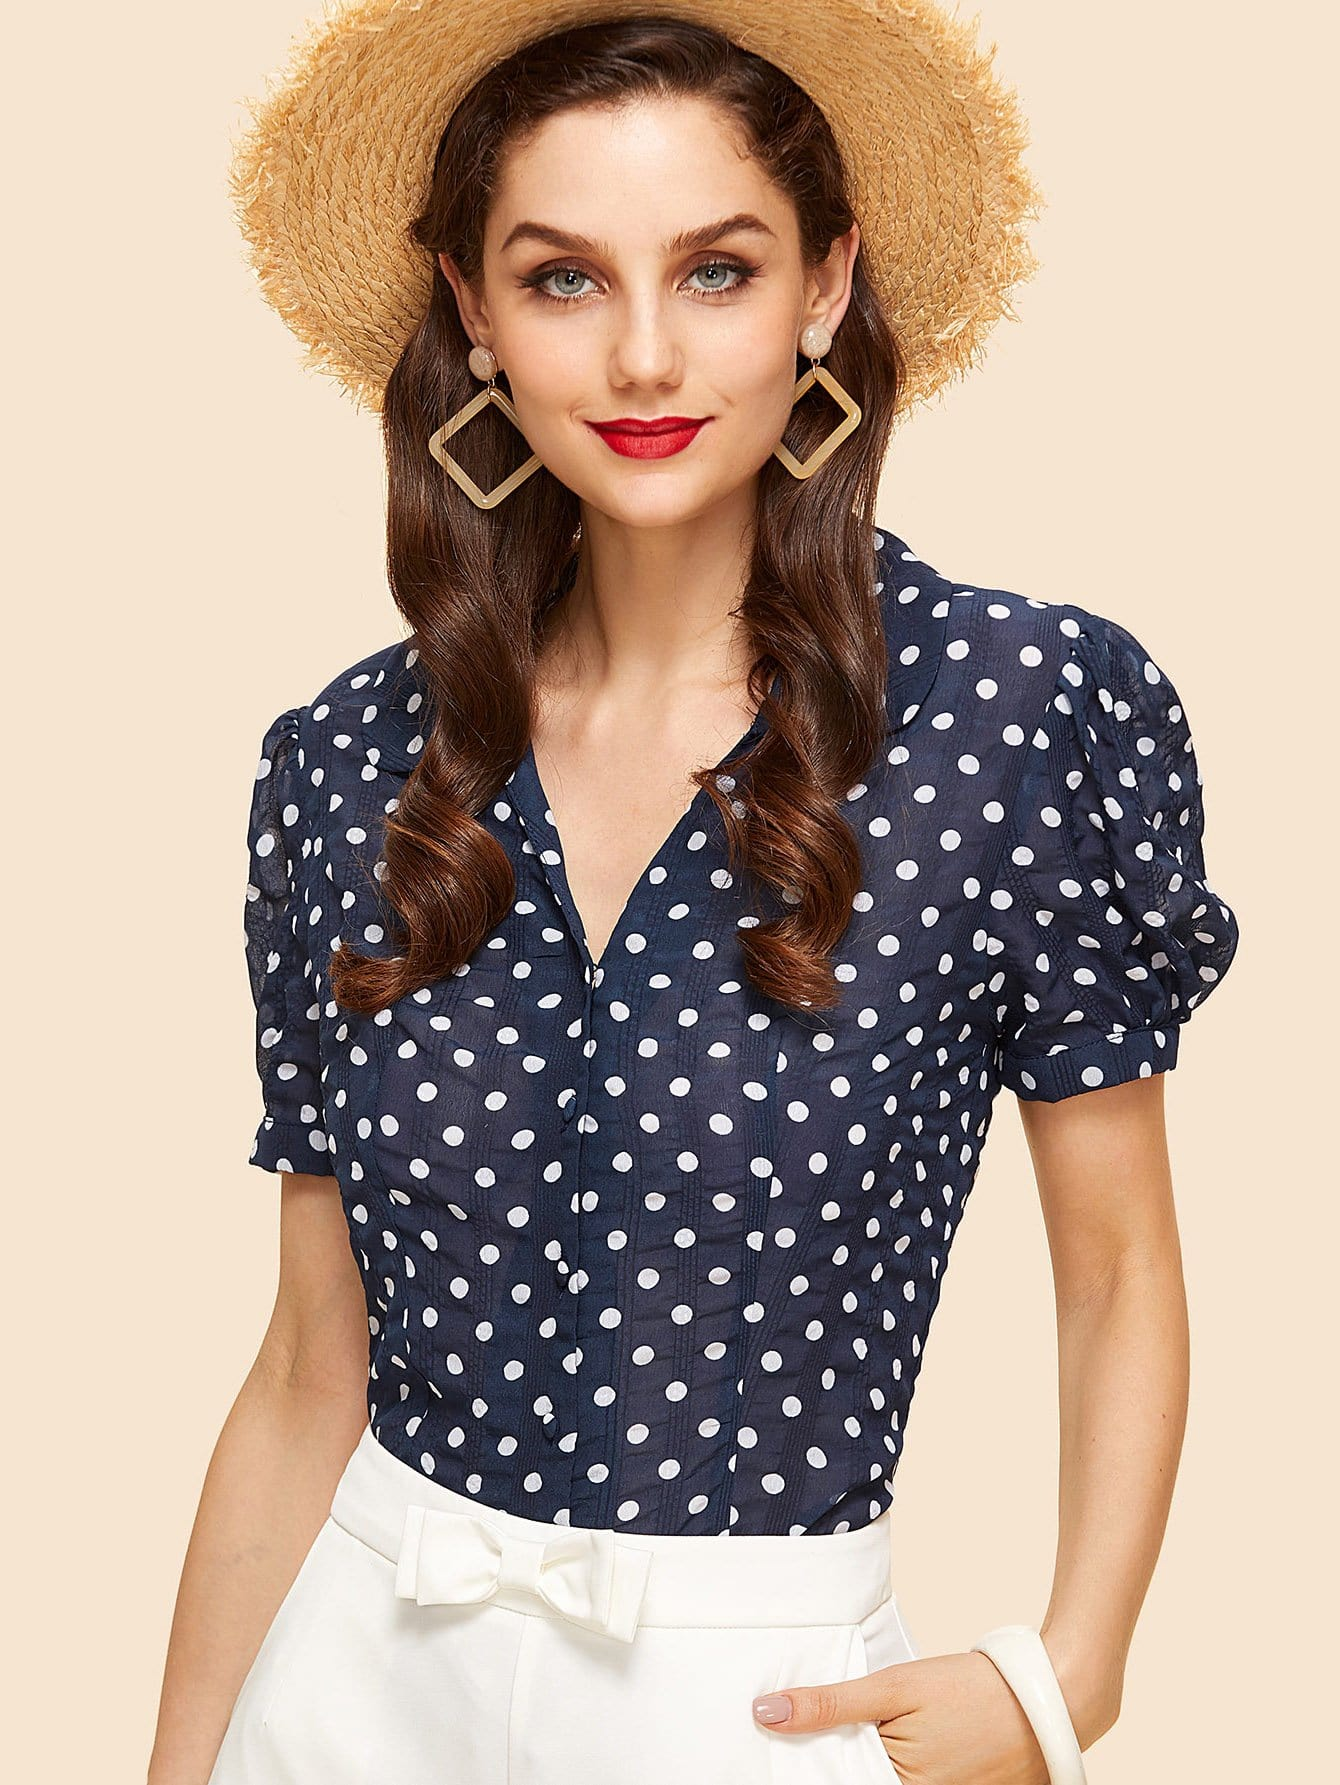 Puff Sleeve Fitted Polka Dot Blouse наматрасники candide наматрасник водонепроницаемый waterproof fitted sheet 60x120 см